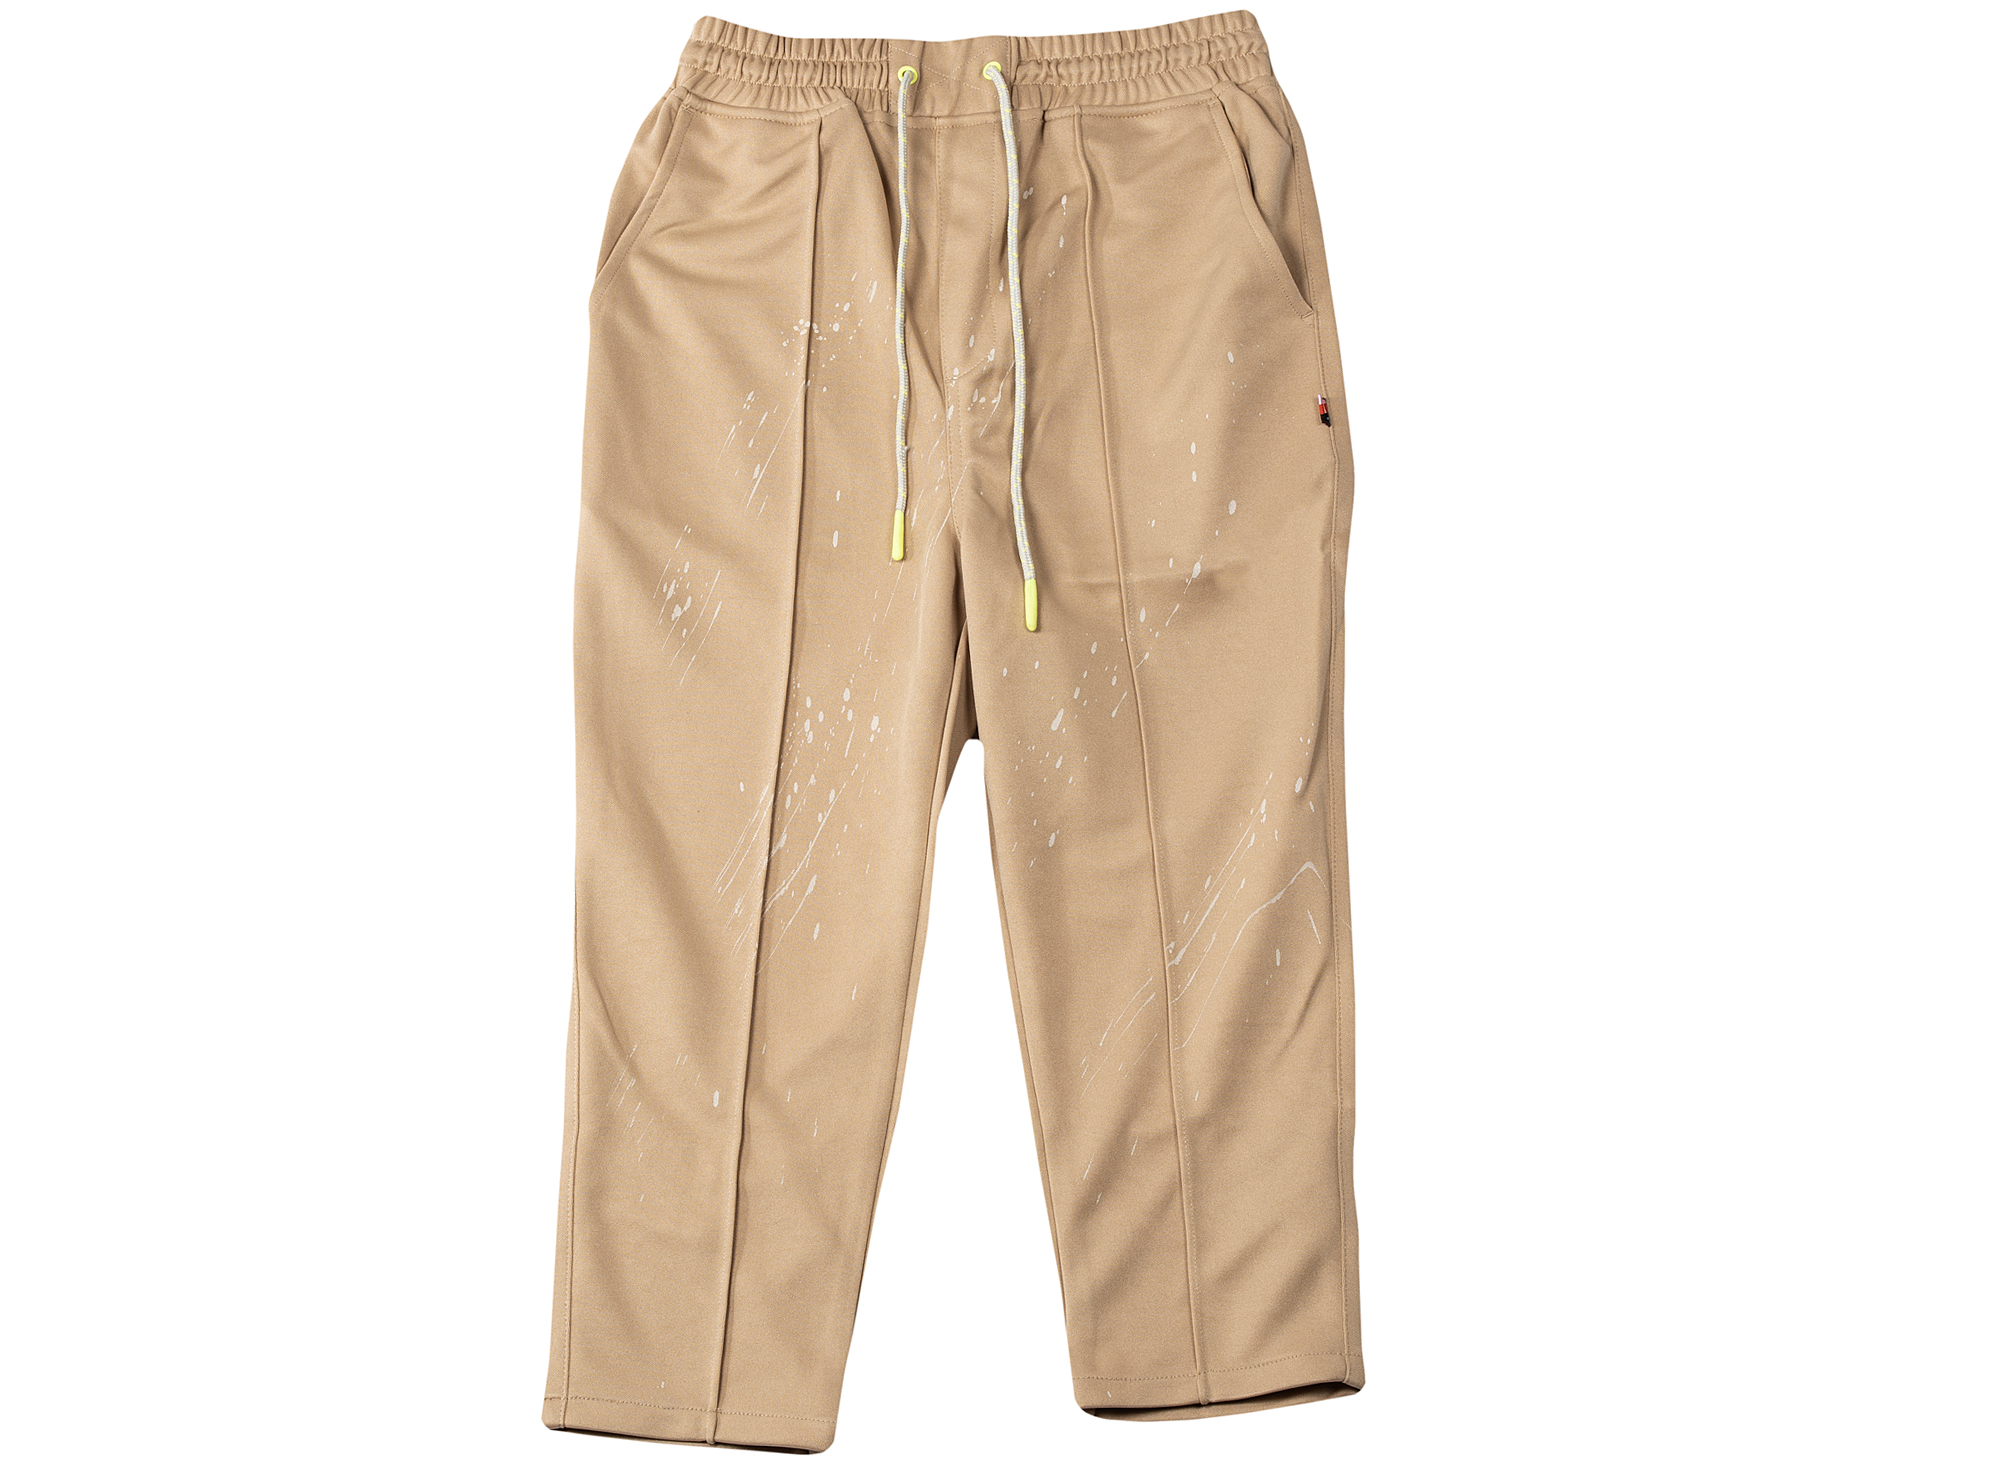 Honor the Gift Artisan Fleece Track Pants in Sand